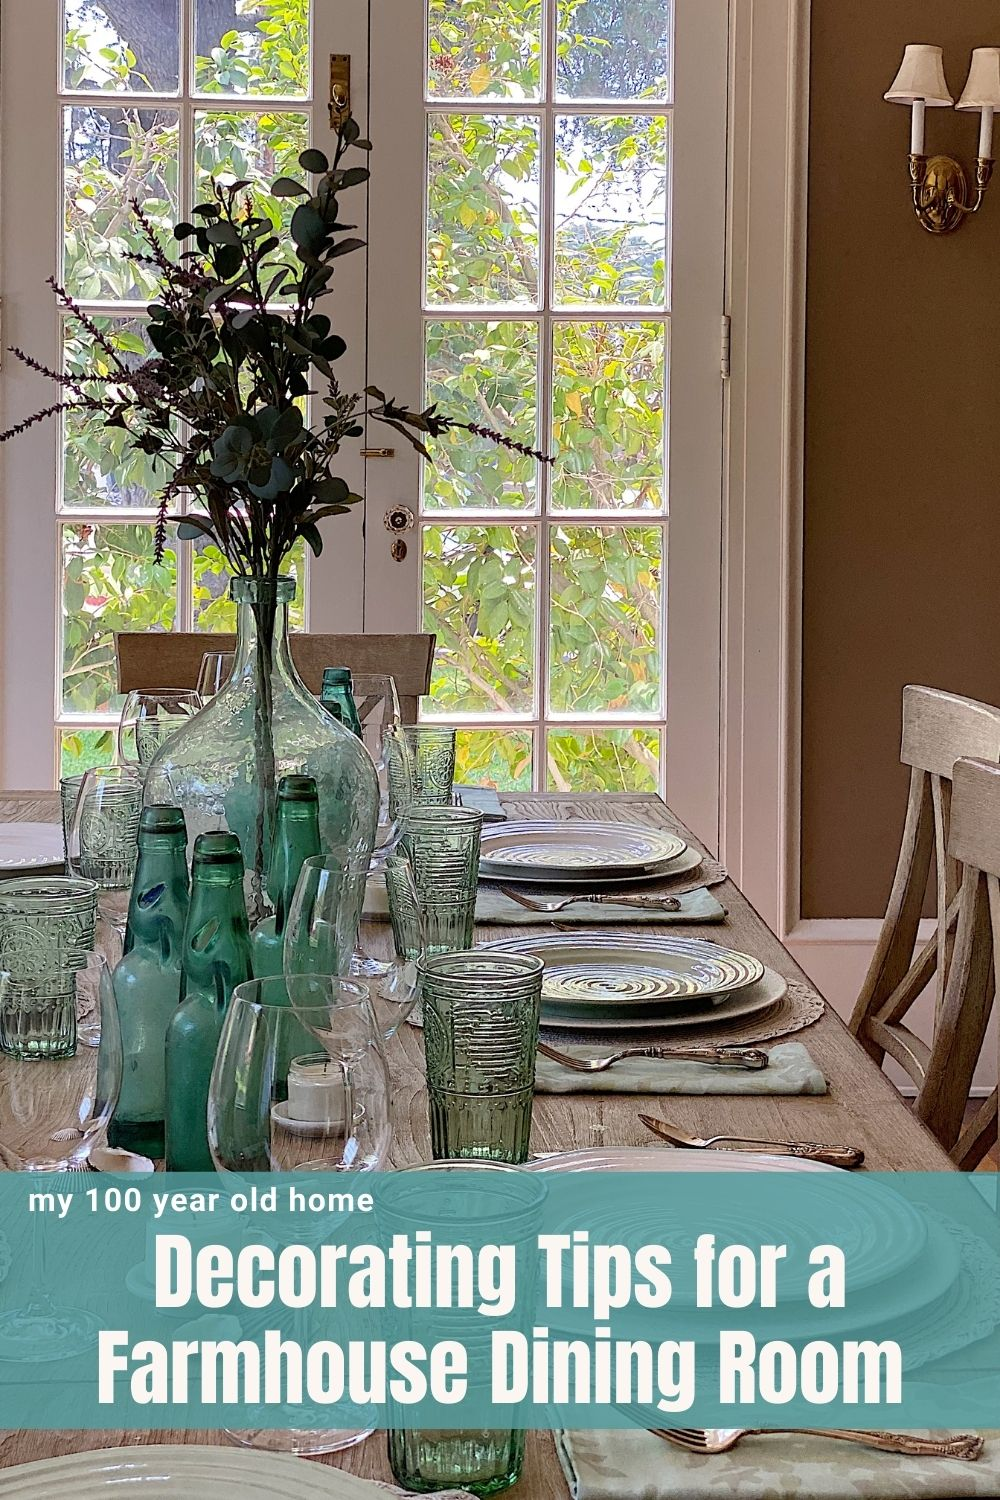 My summer home tour continues and today I am sharing Decorating Tips for a Modern Farmhouse Dining Room. The aqua green in here is stunning!